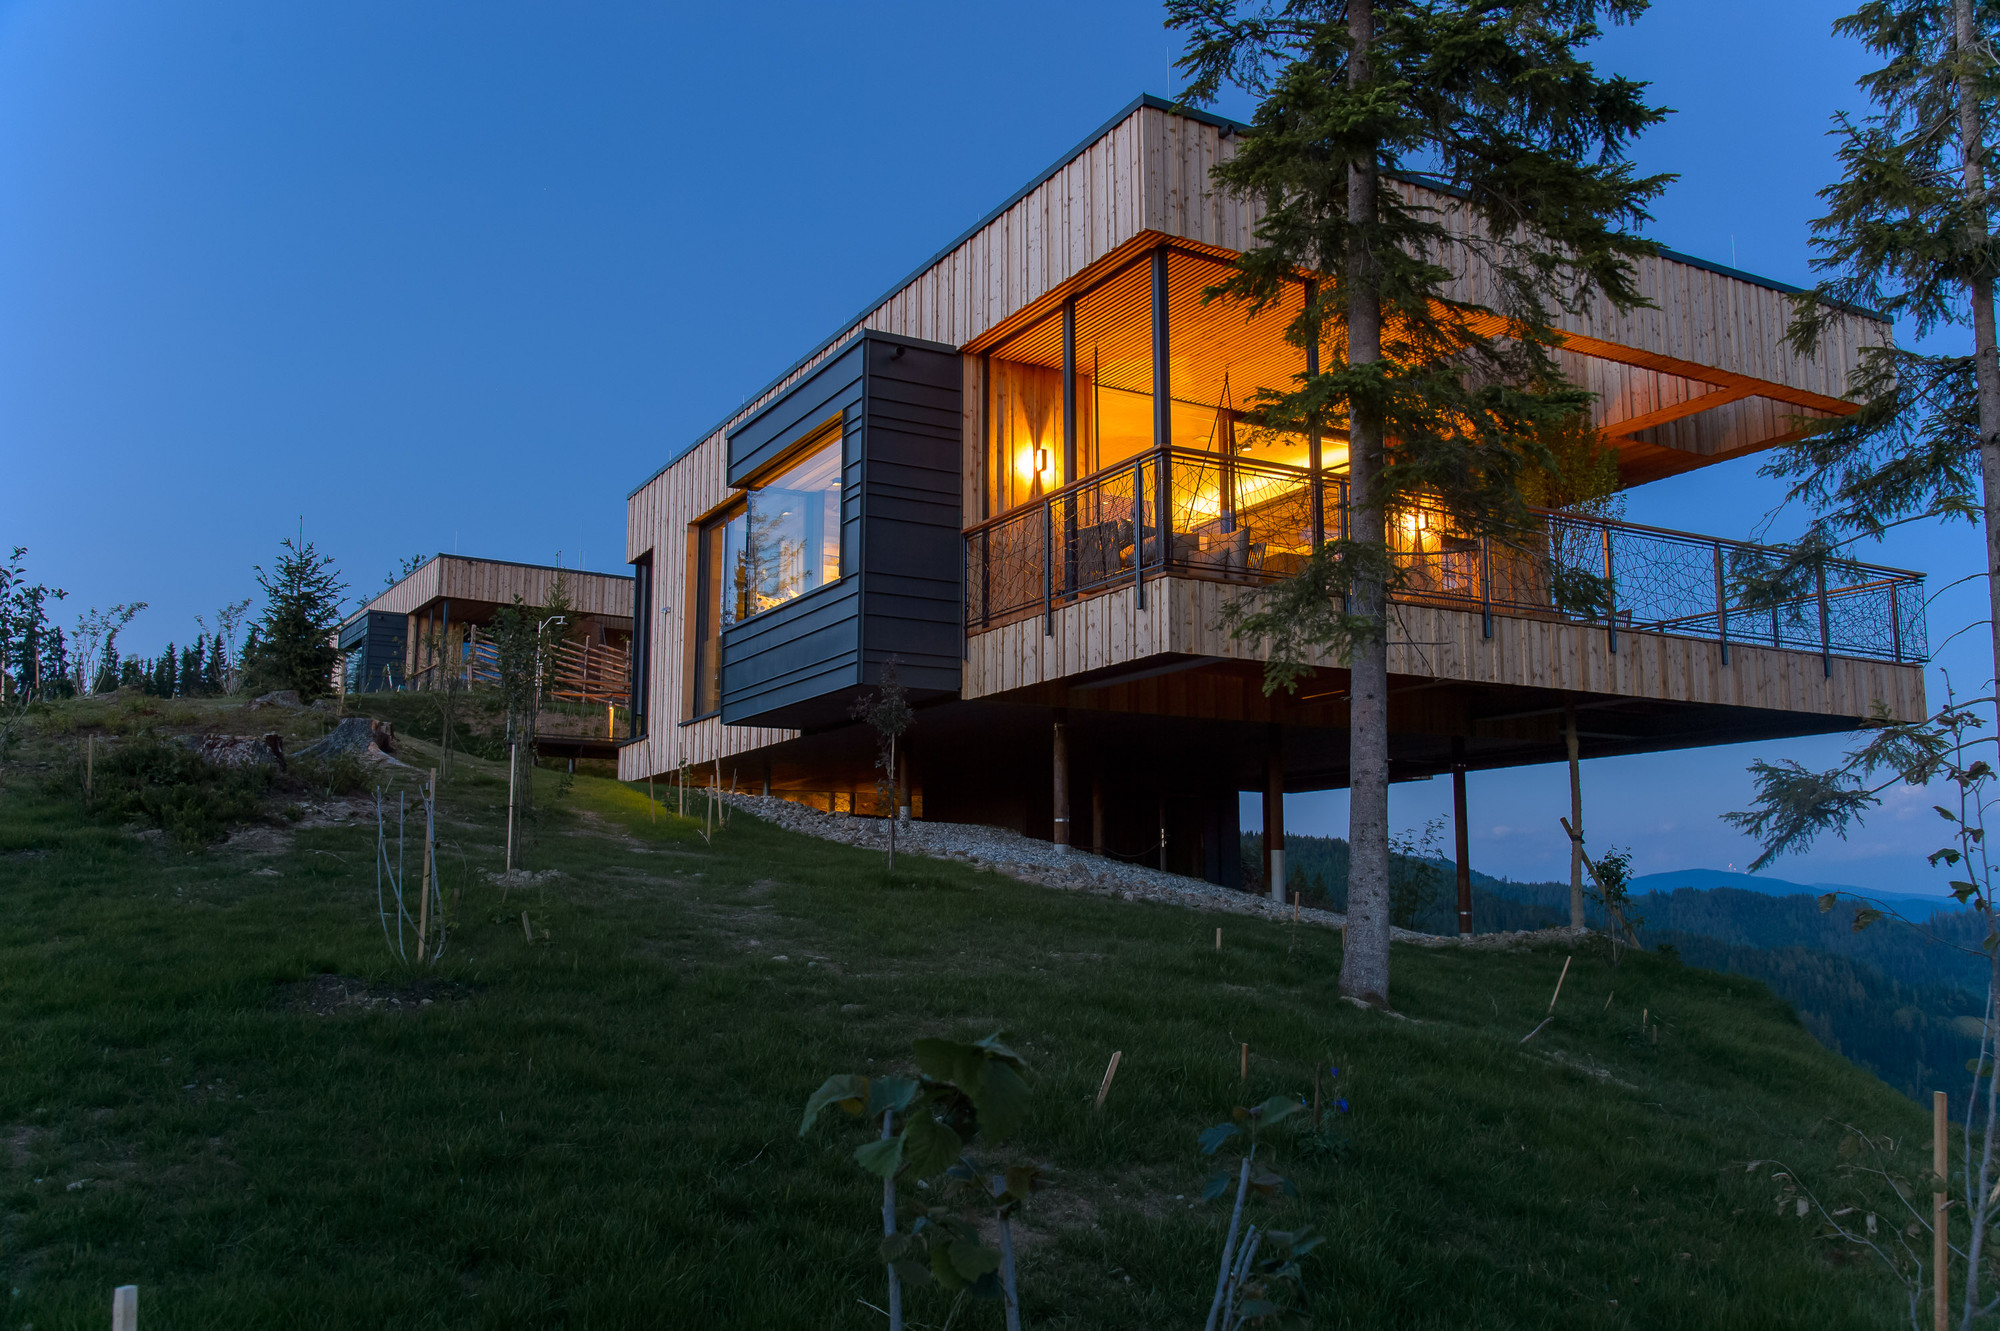 Gallery of deluxe mountain chalets viereck architects 21 for Is architecture